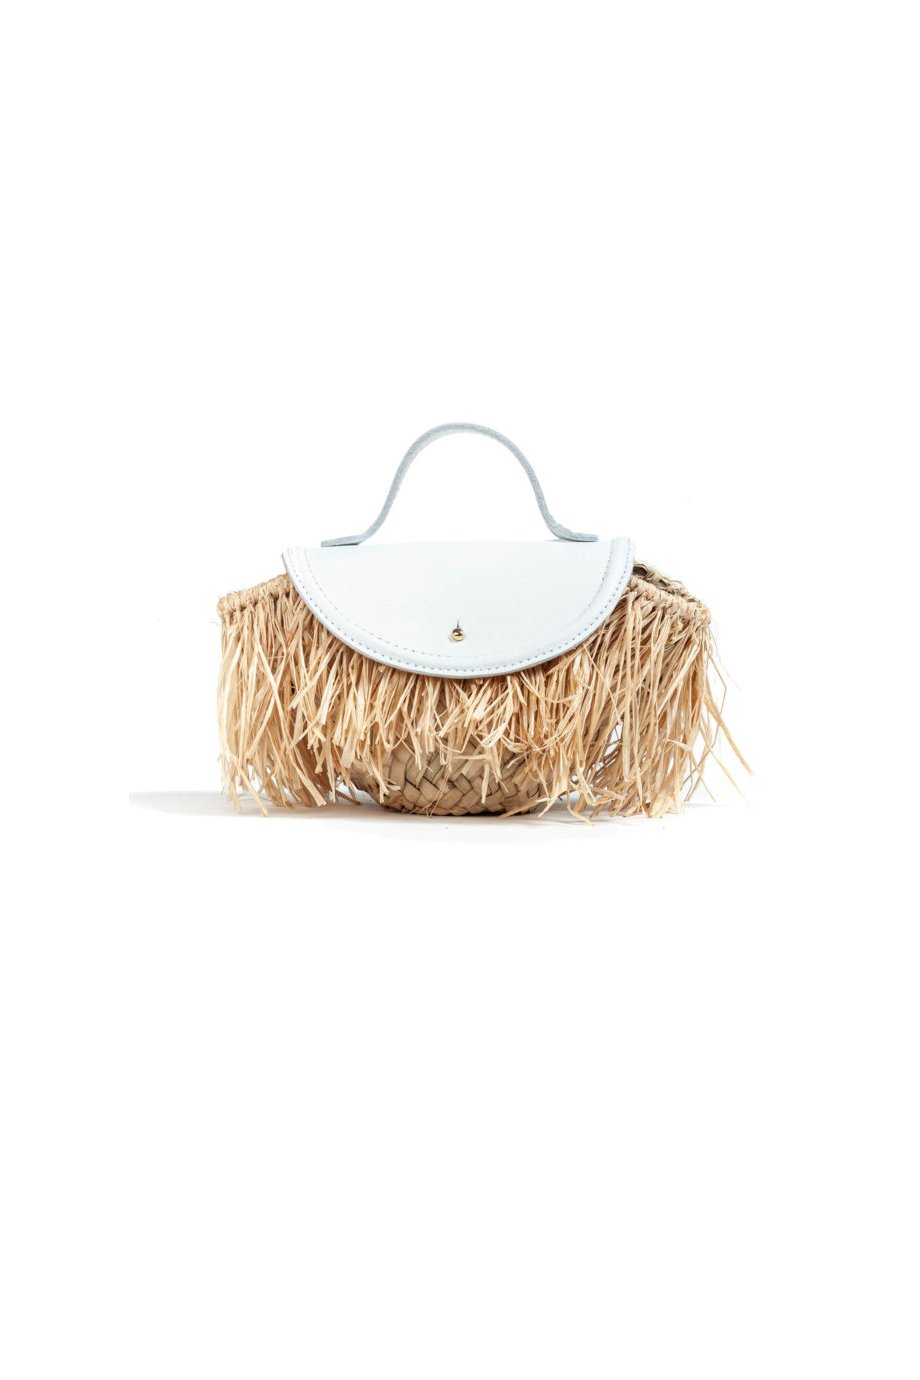 STRAW BASKET BAG MADE WITH LEATHER COCONUT